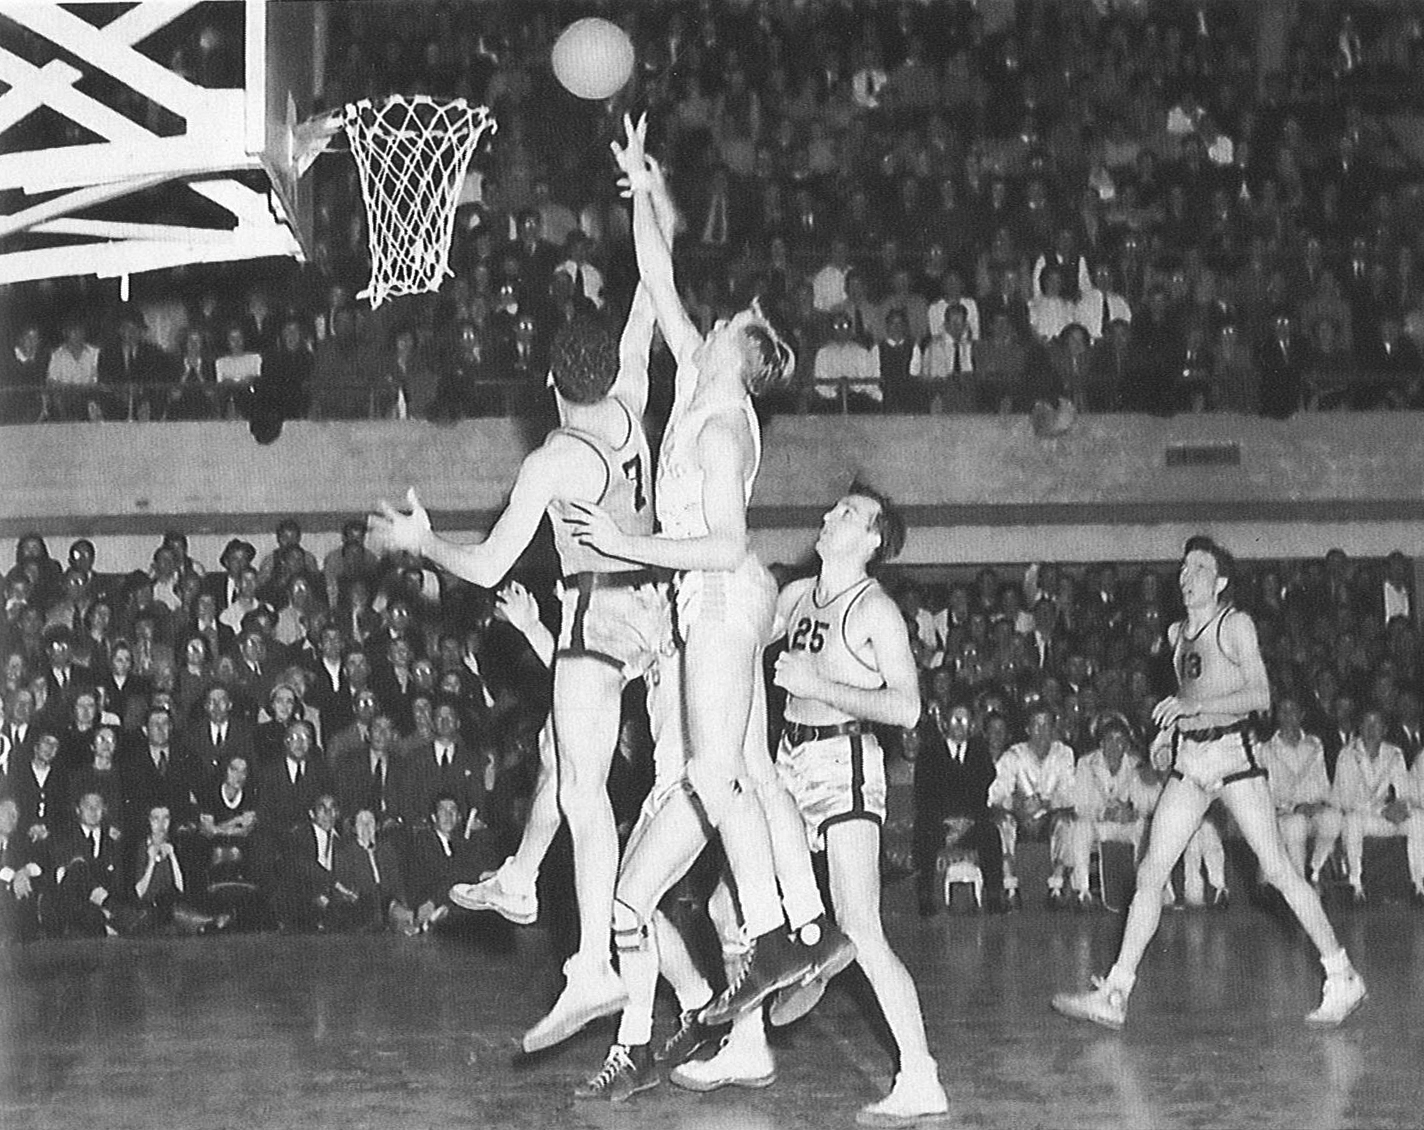 Cooley driving for the basket as a player with the UT Longhorn basketball team.